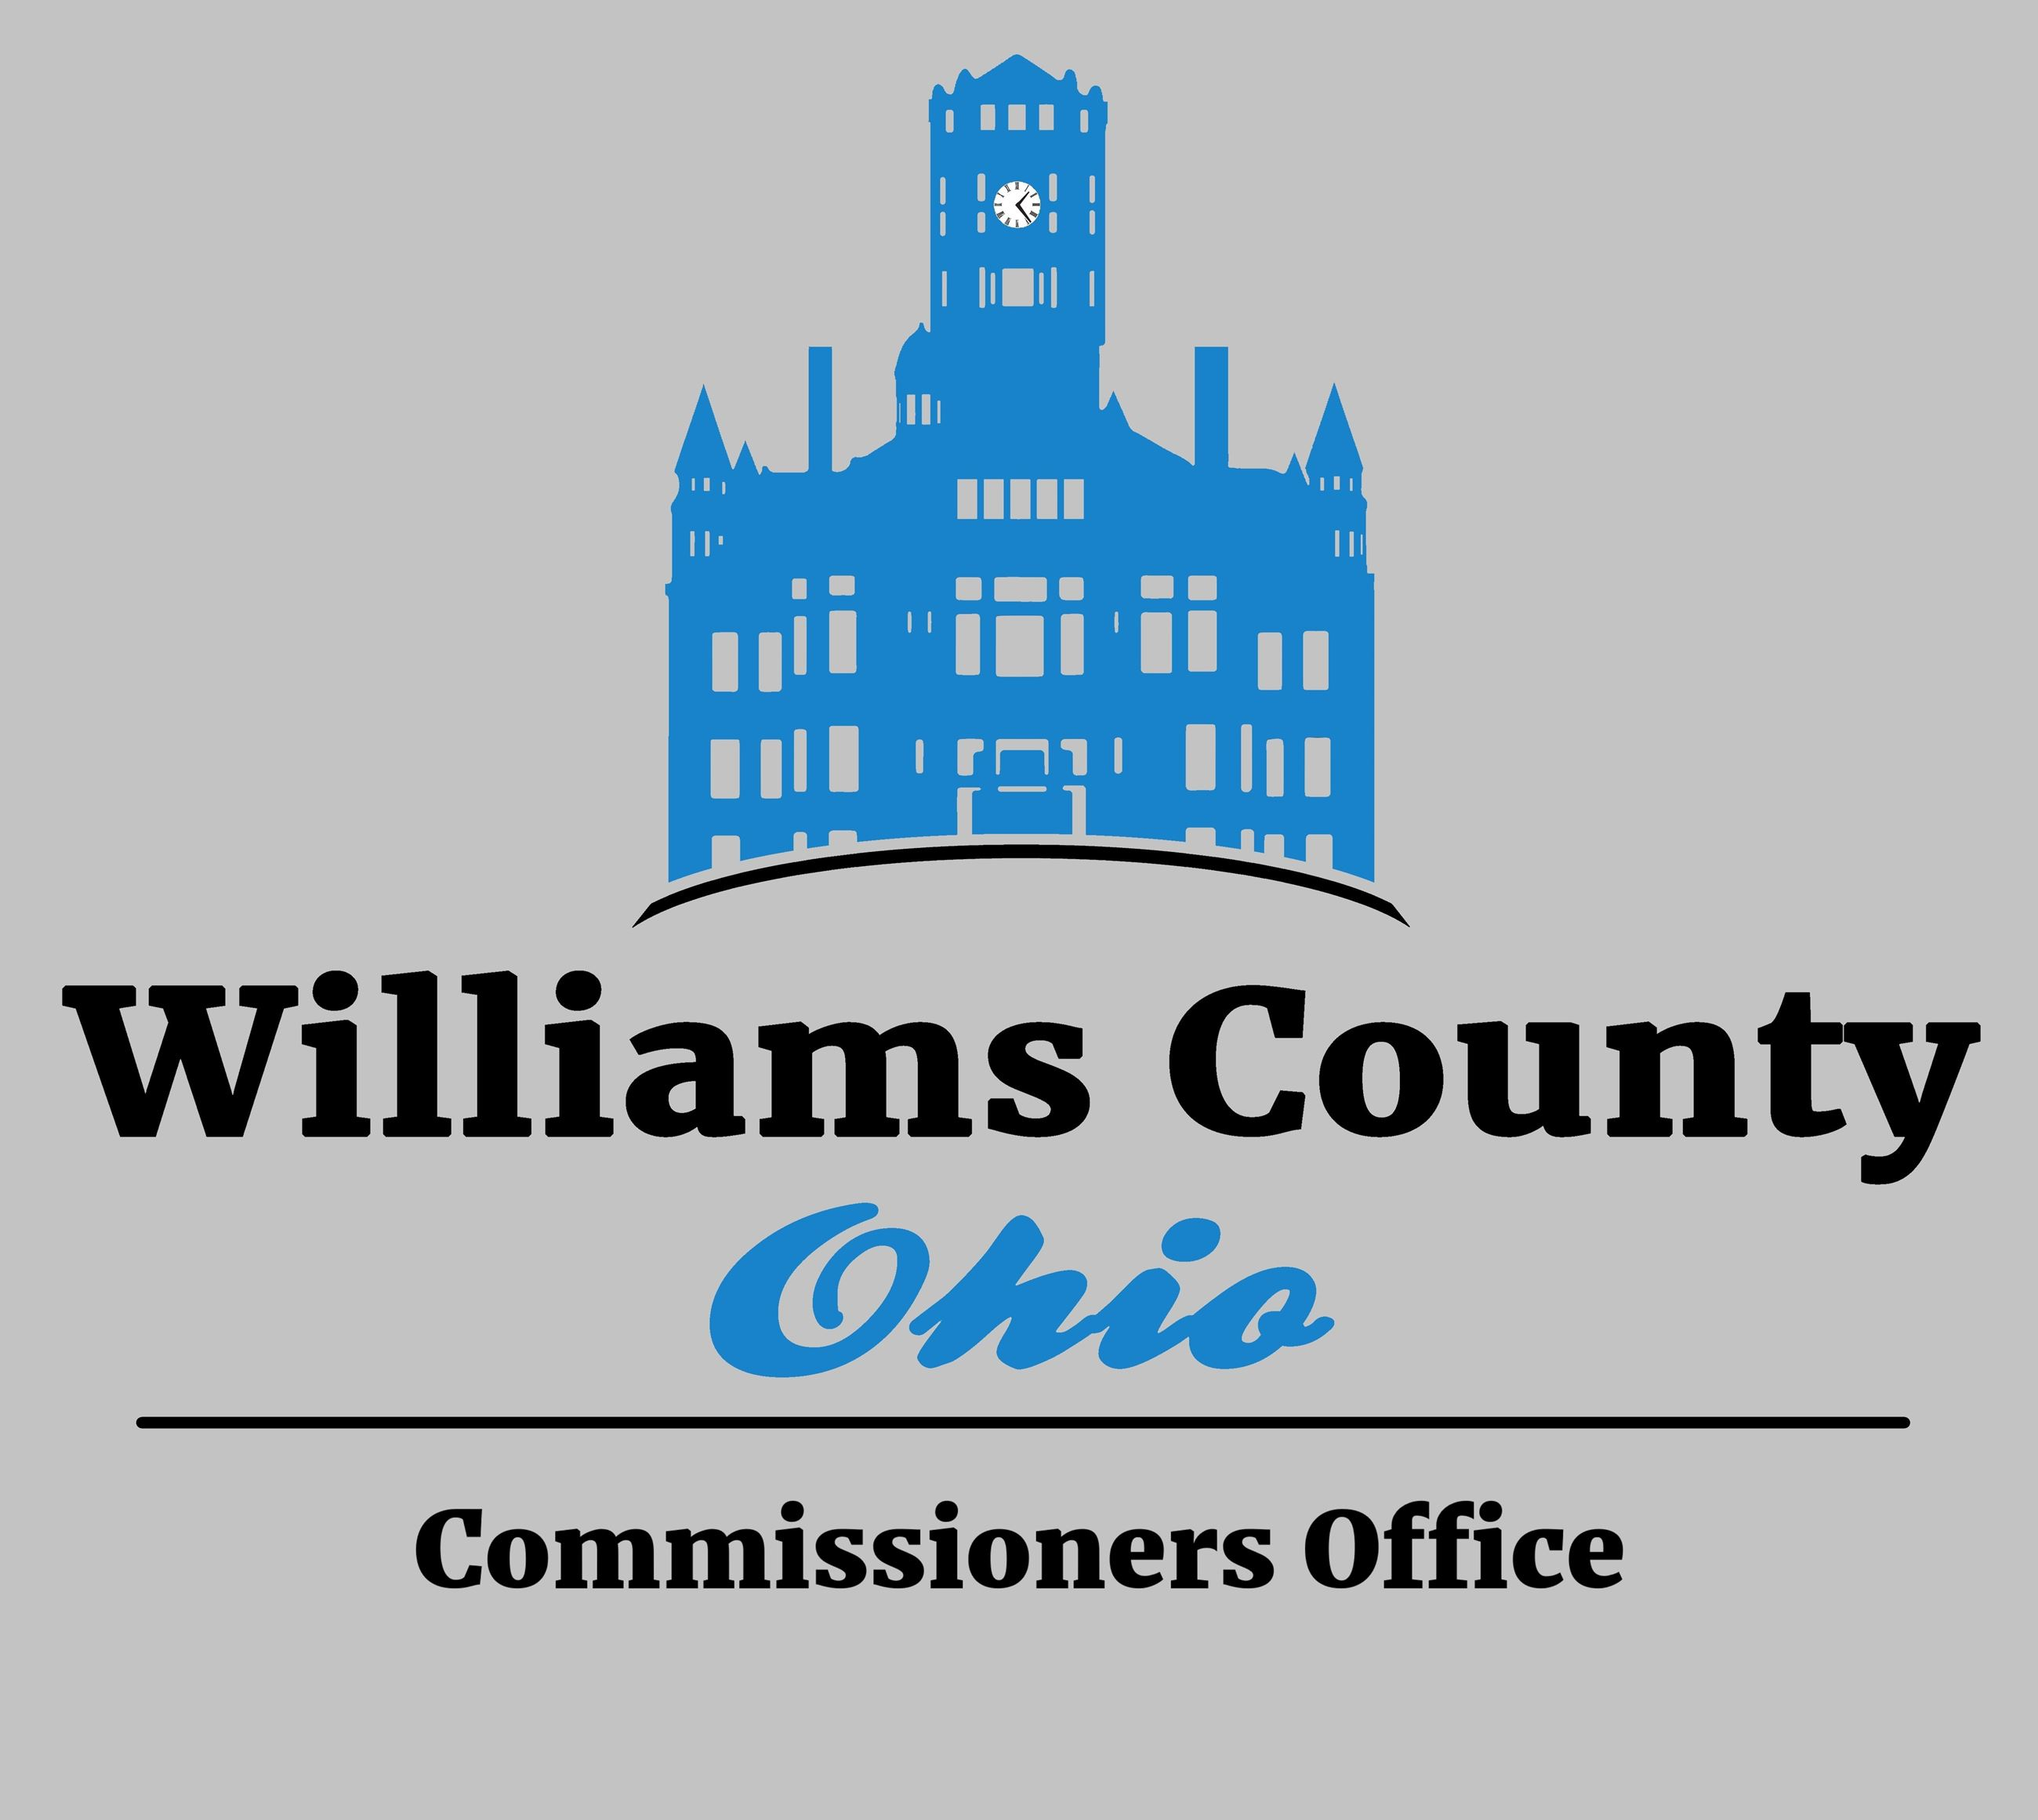 09-07-17 - Williams County Logo - Commissioners